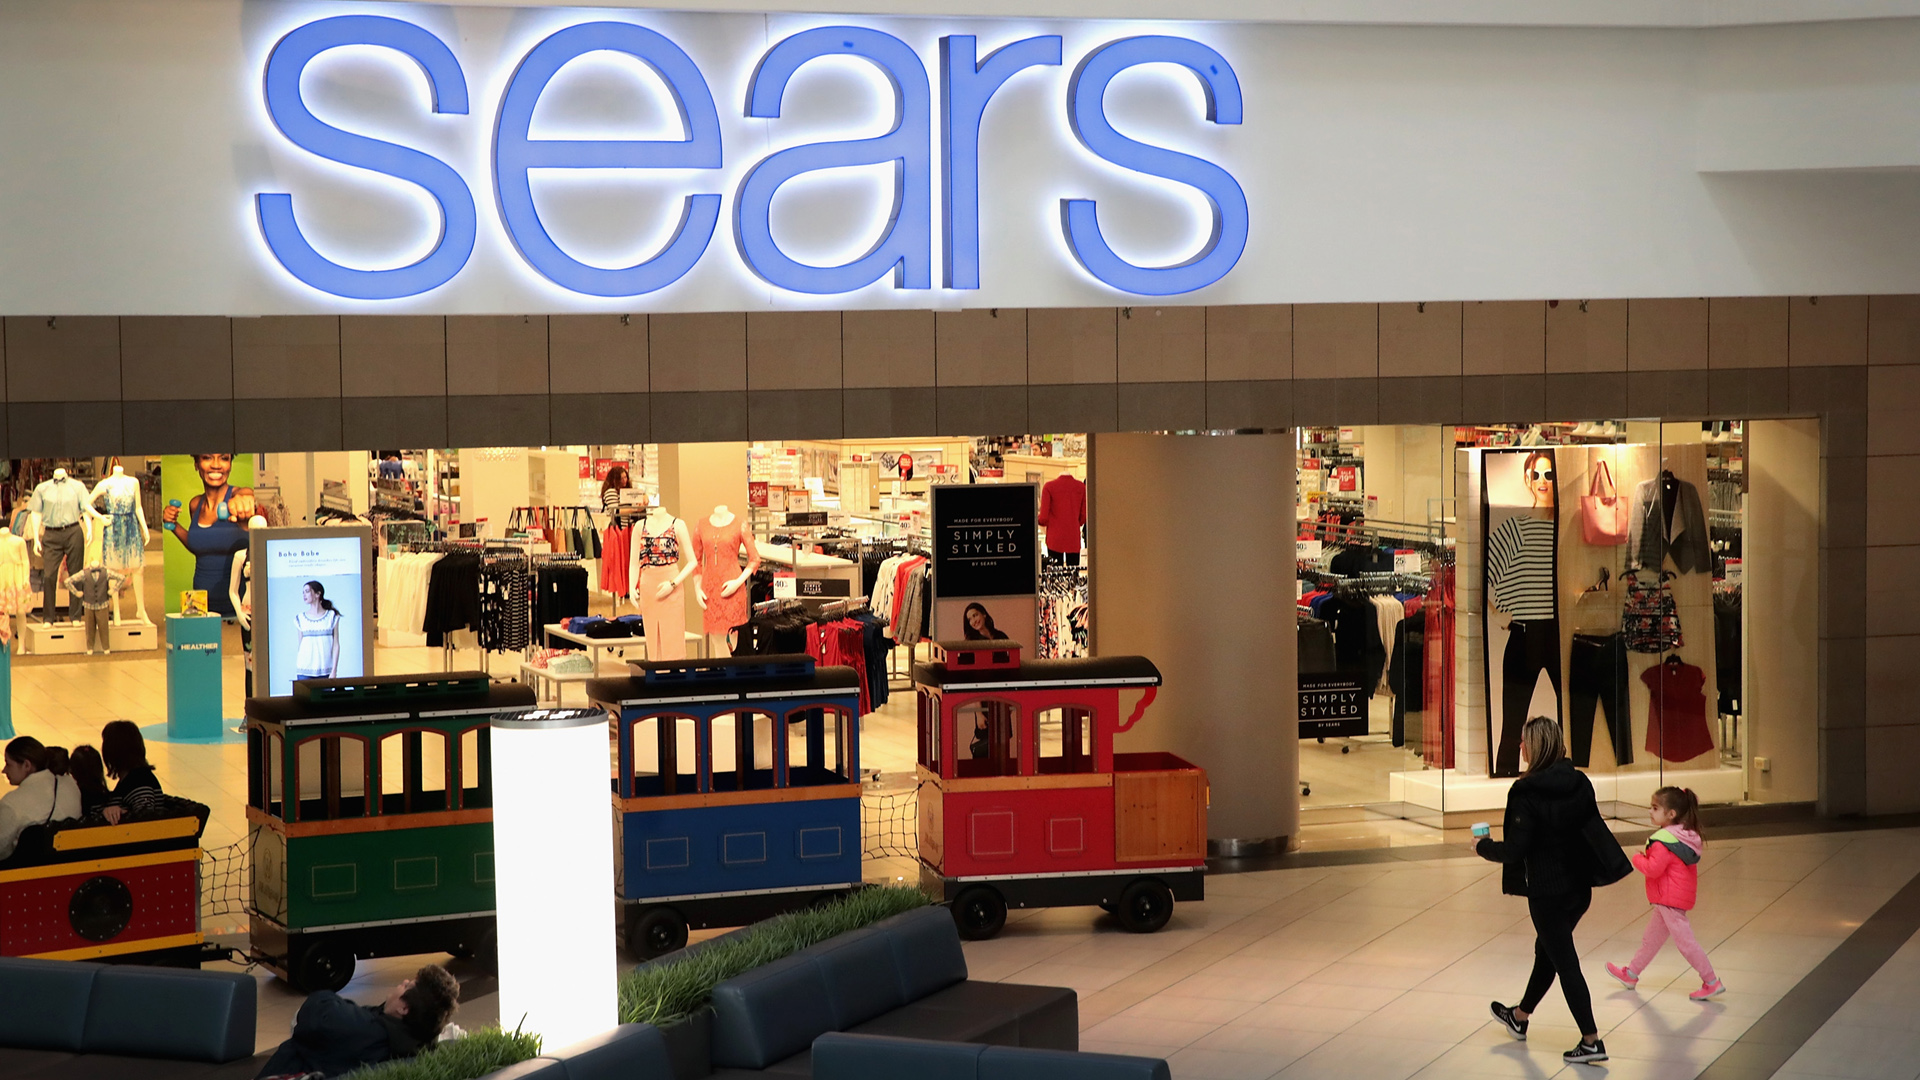 sears storefront55581958-159532